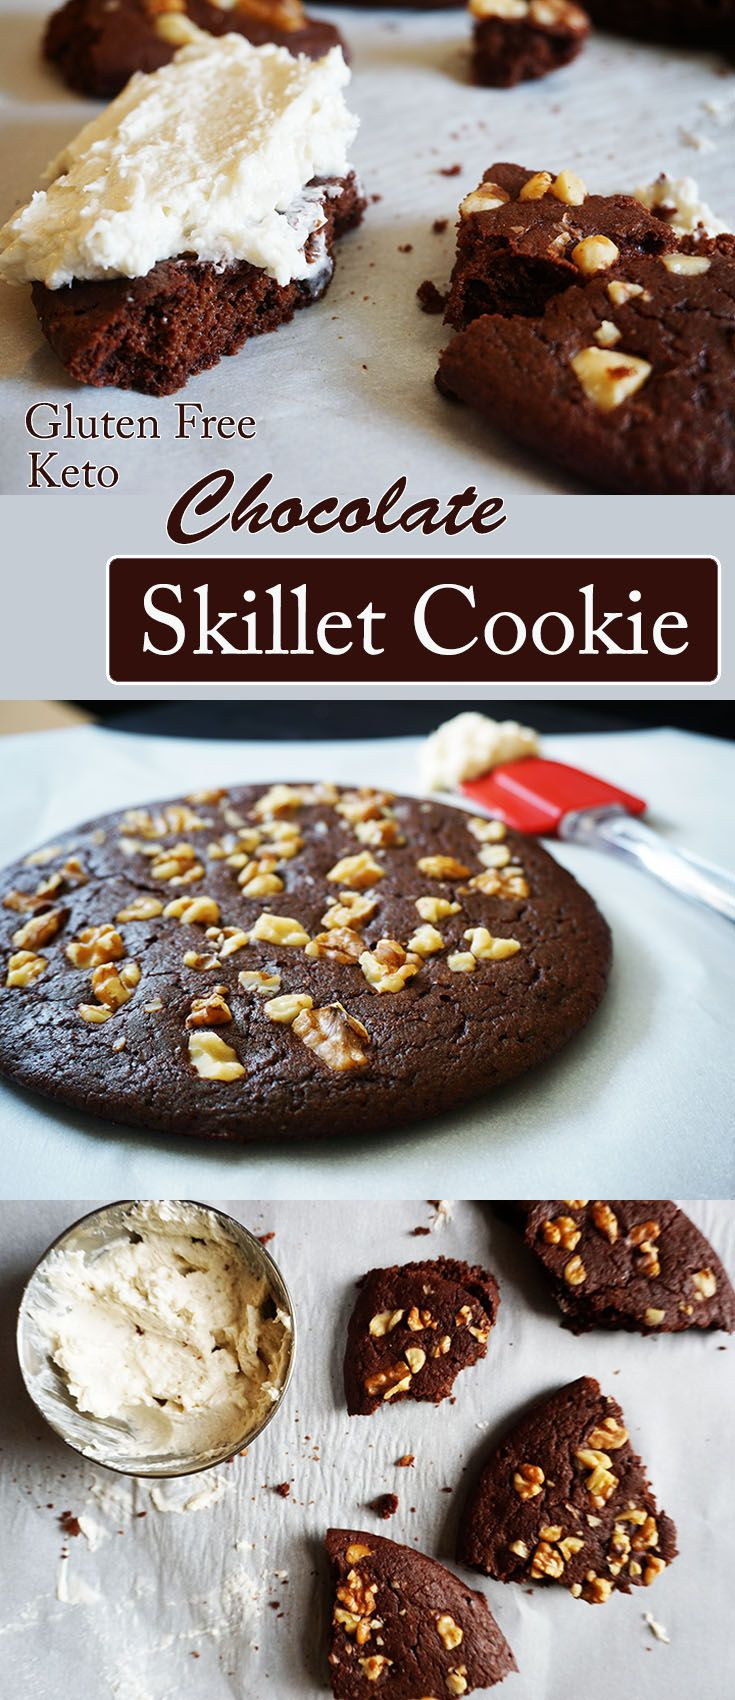 All you need is a non-stick skillet to make the best Chocolate Cookie you've…